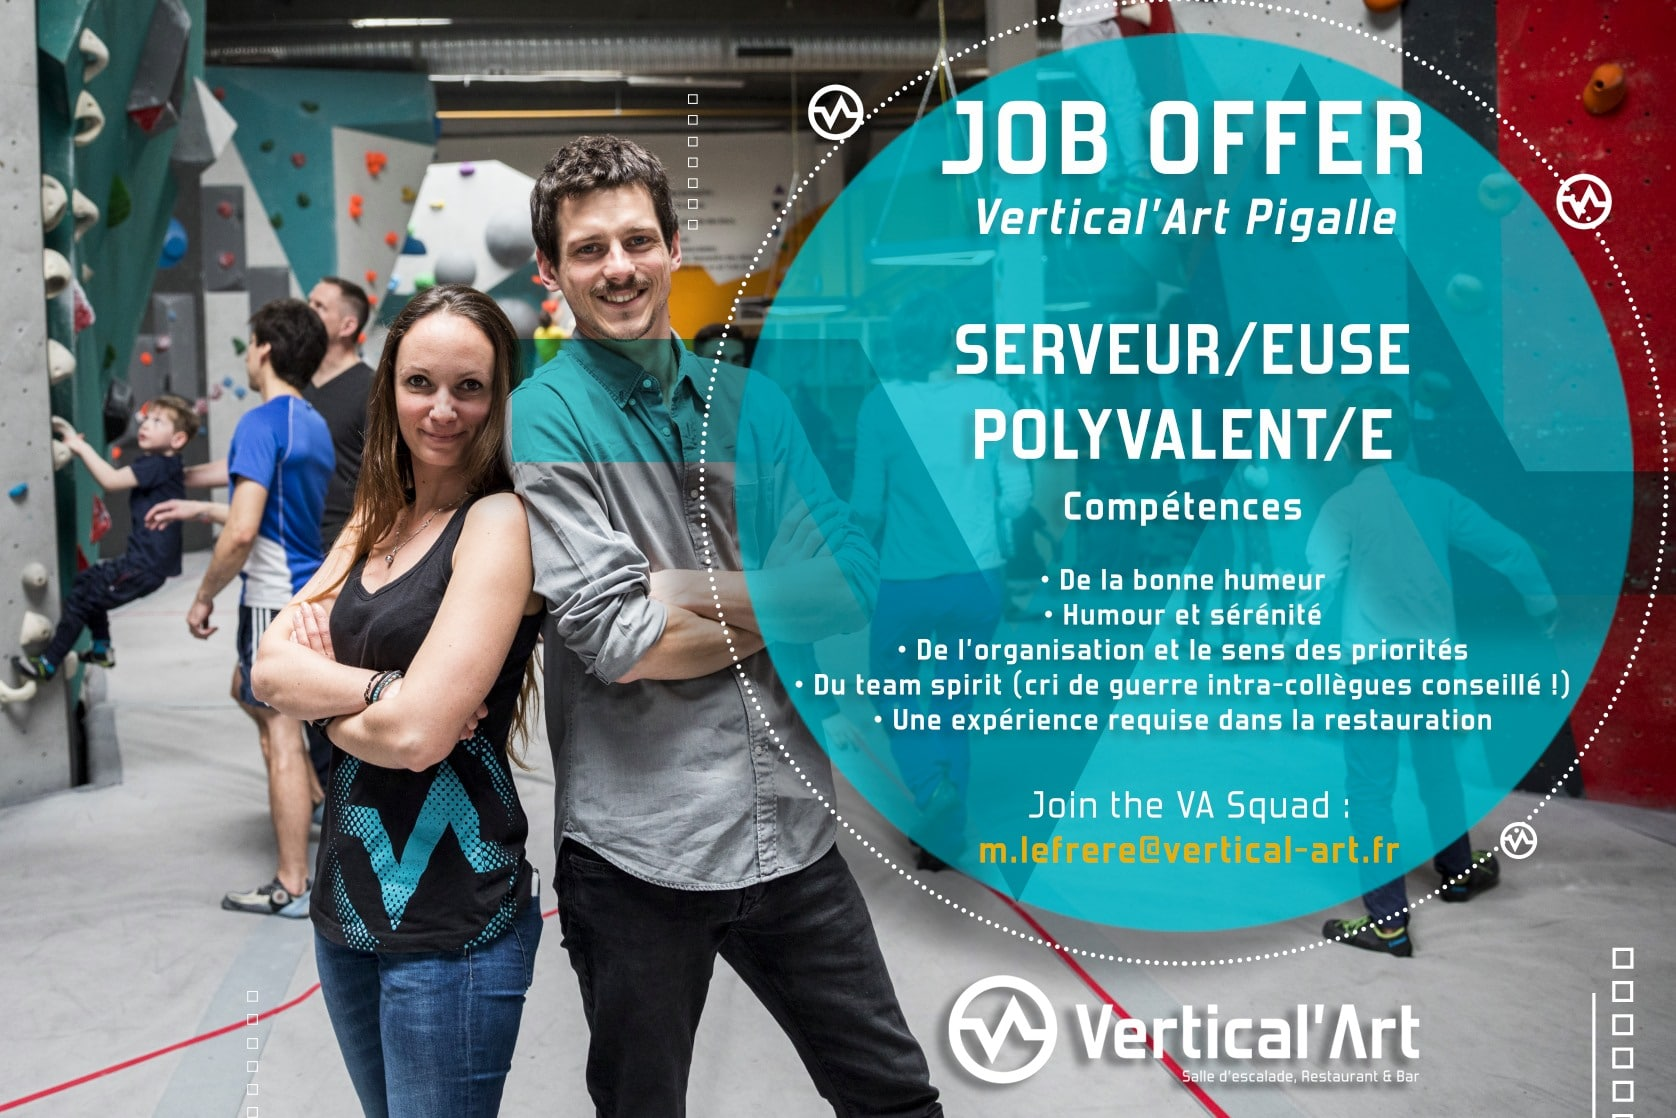 Job offer -Vertical'art pigalle- Bar restaurant sqy - nouveau bloc d'escalade - paris - Pigalle - Vertical'Art - restaurant - bar à paris -